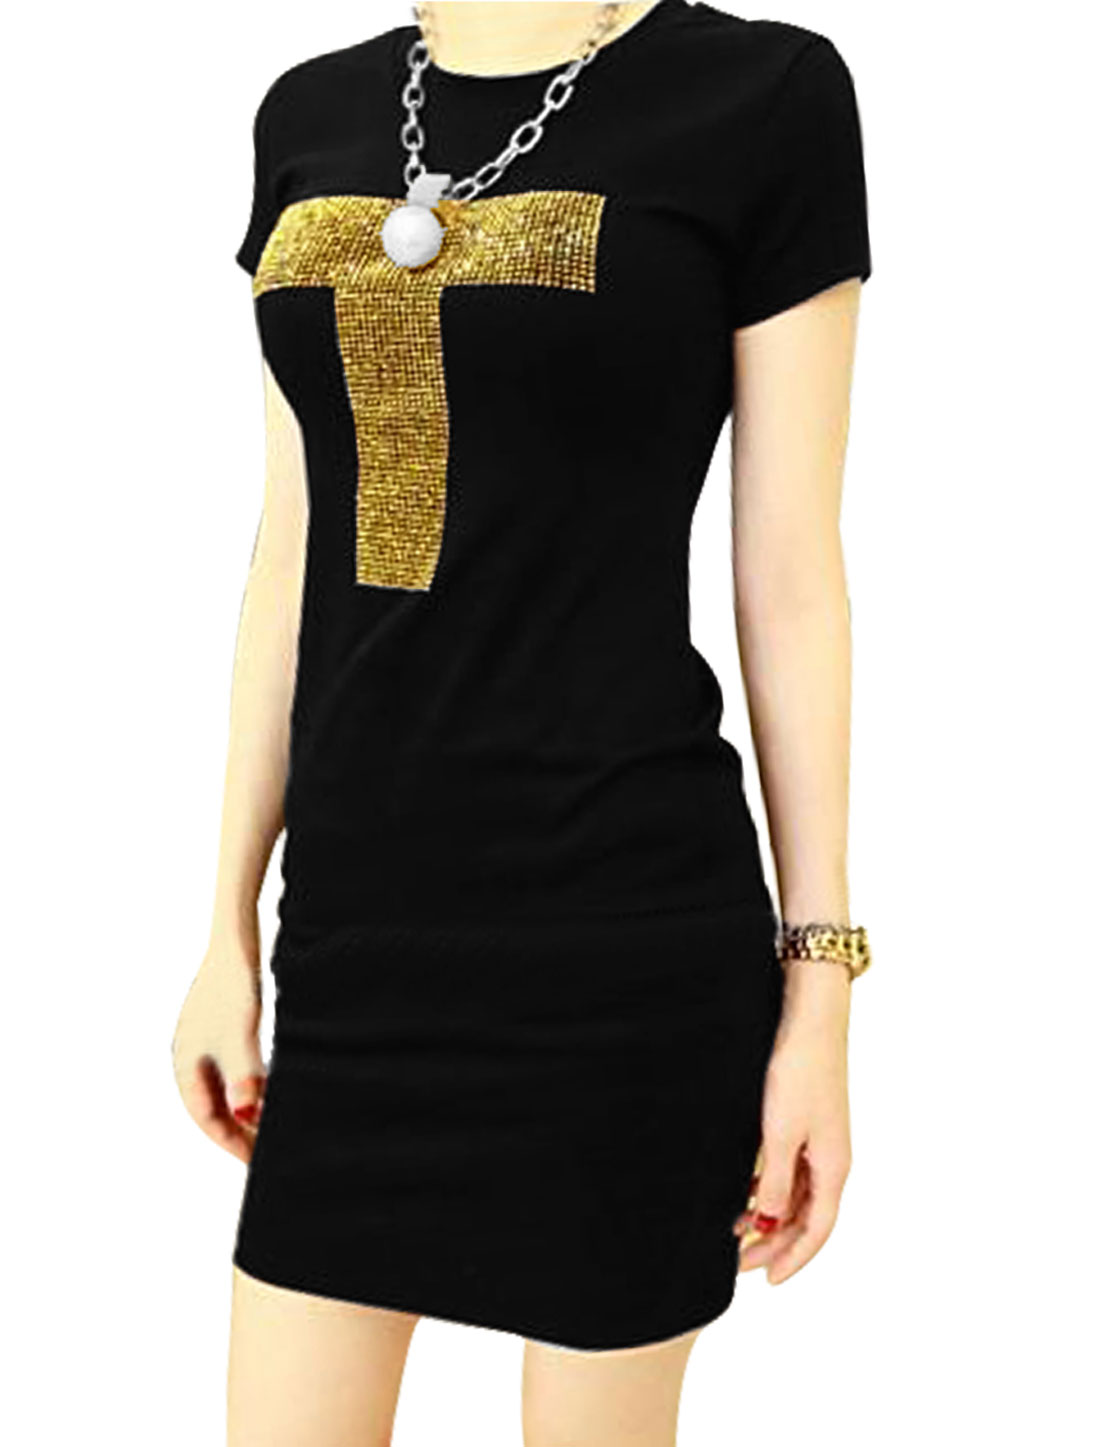 Women Round Neck Rhinestones Decor Letters Pattern Slim Short Dress Black XS